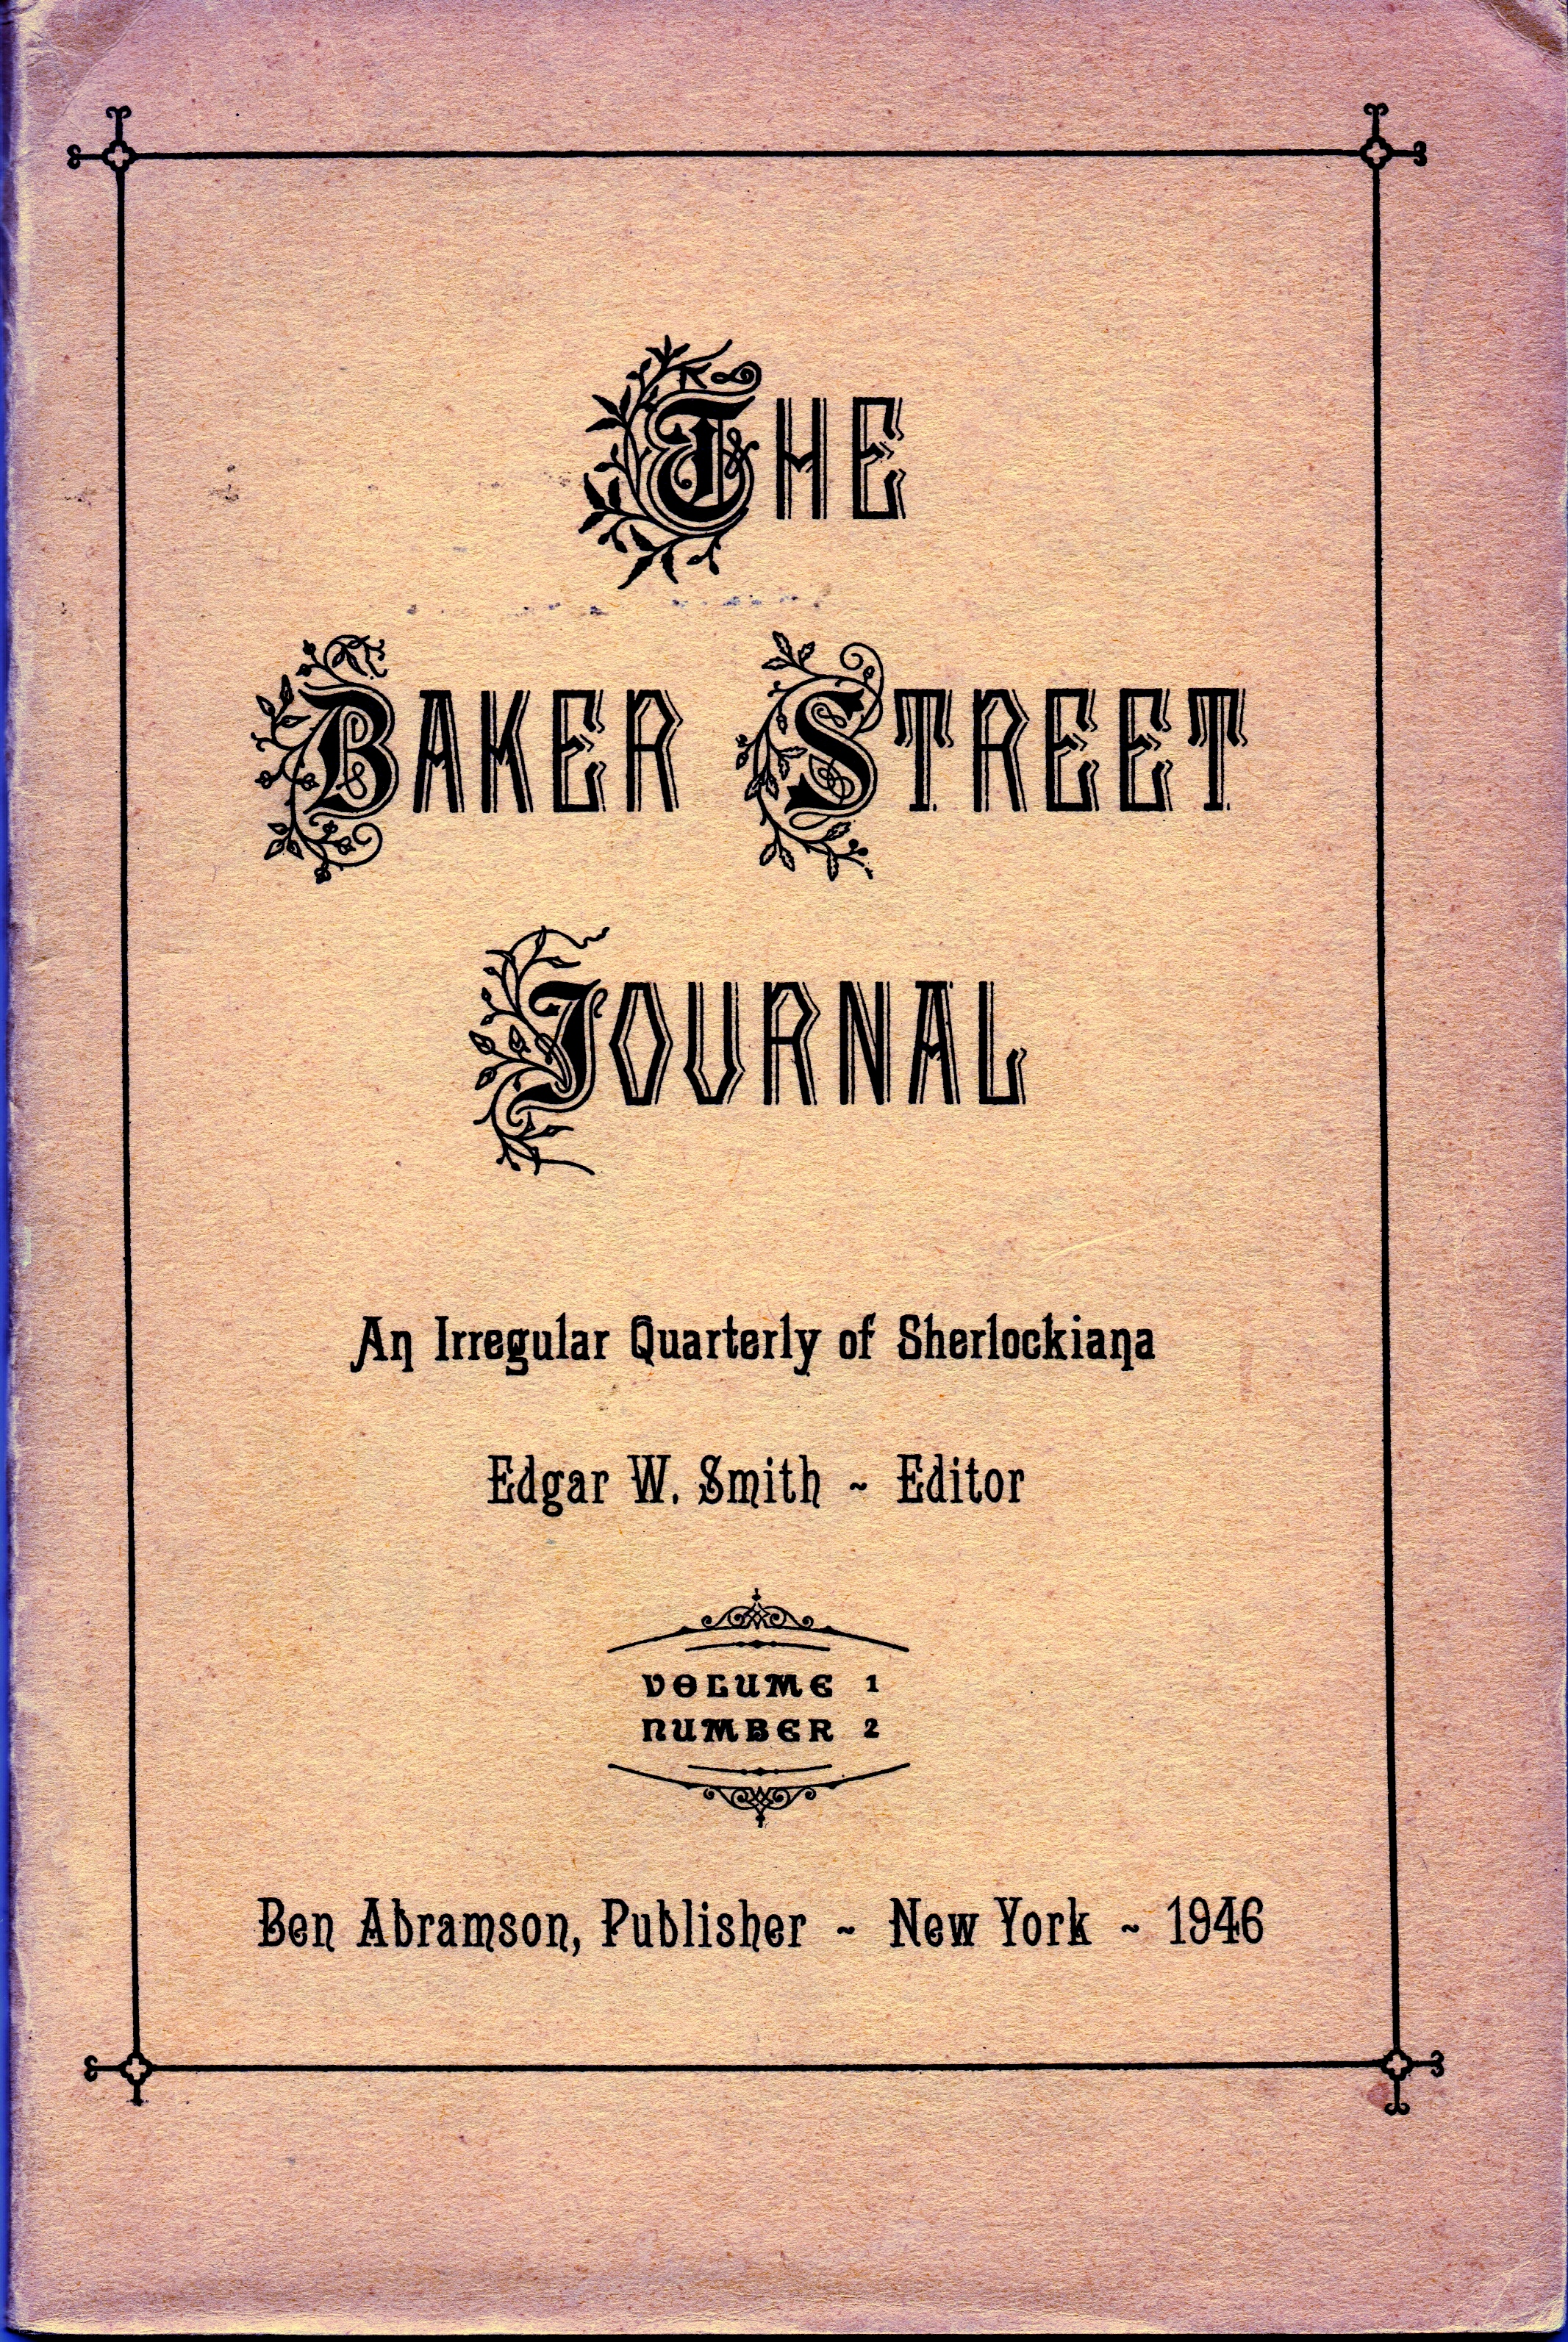 The Baker Street Journal from April 1946 which states that Dr. Cutter was an early member of Chicago's The Hounds of the Baskerville (sic).